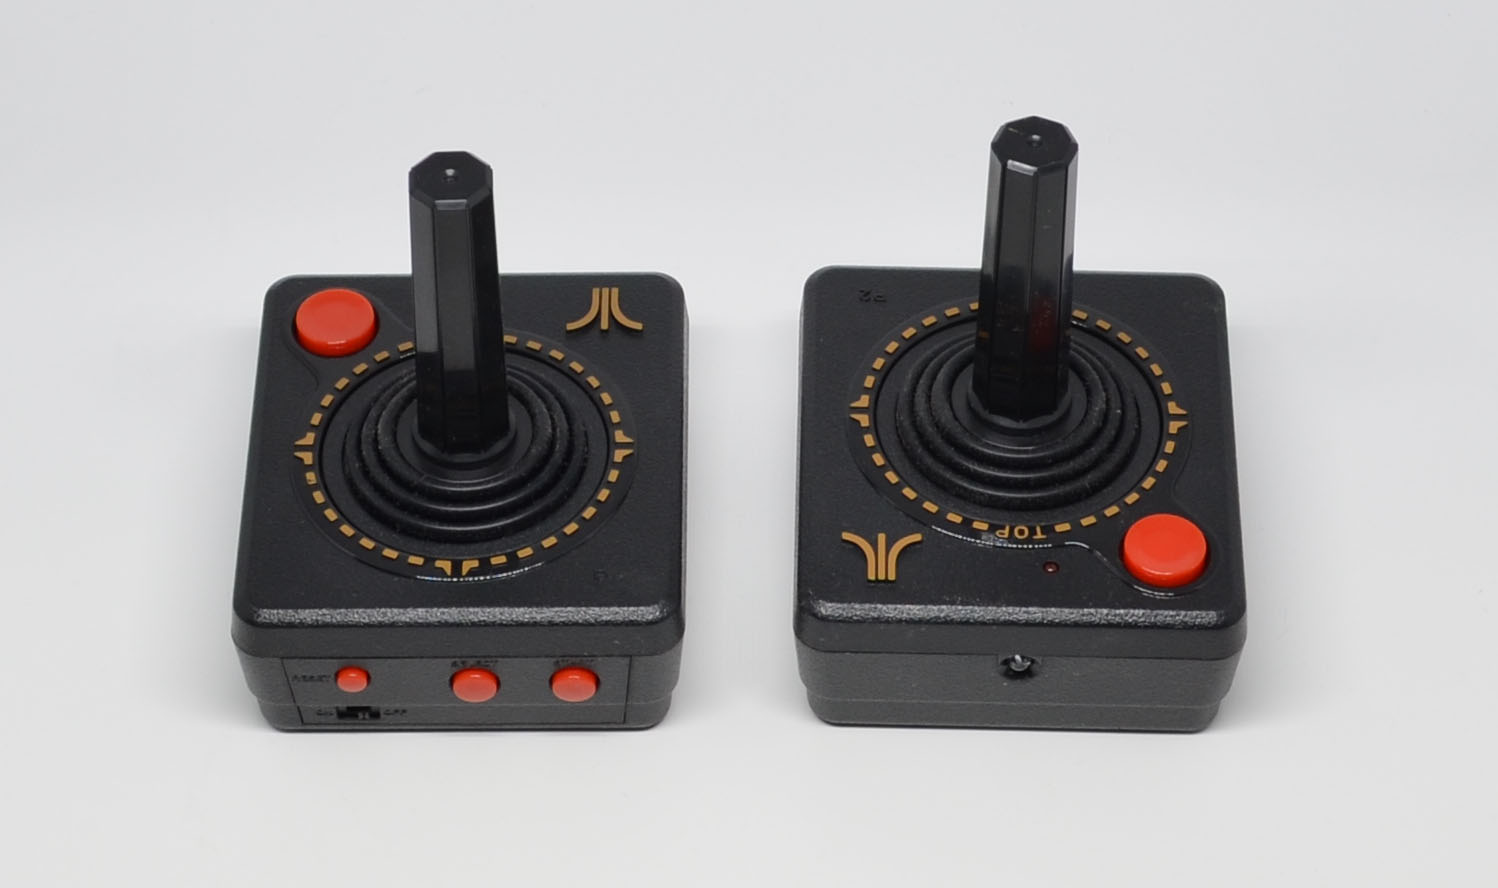 The included controllers.